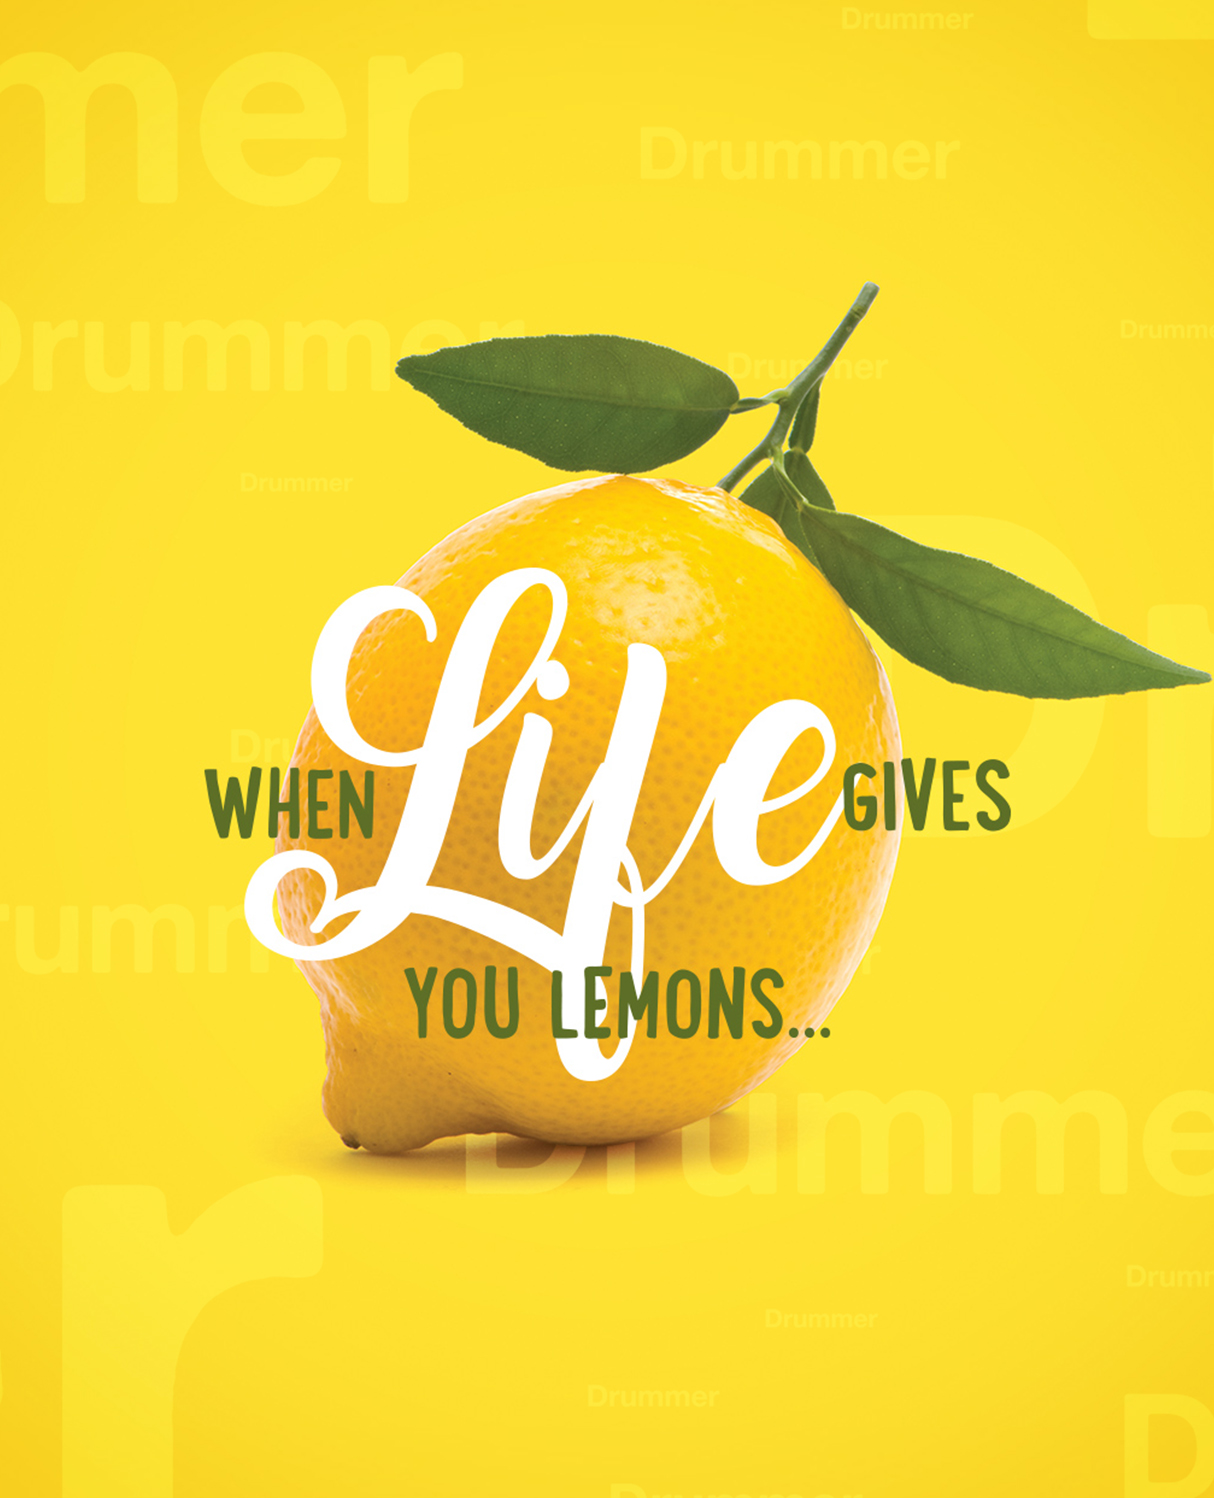 Samaritan's Purse When Life Gives You Lemons Creative